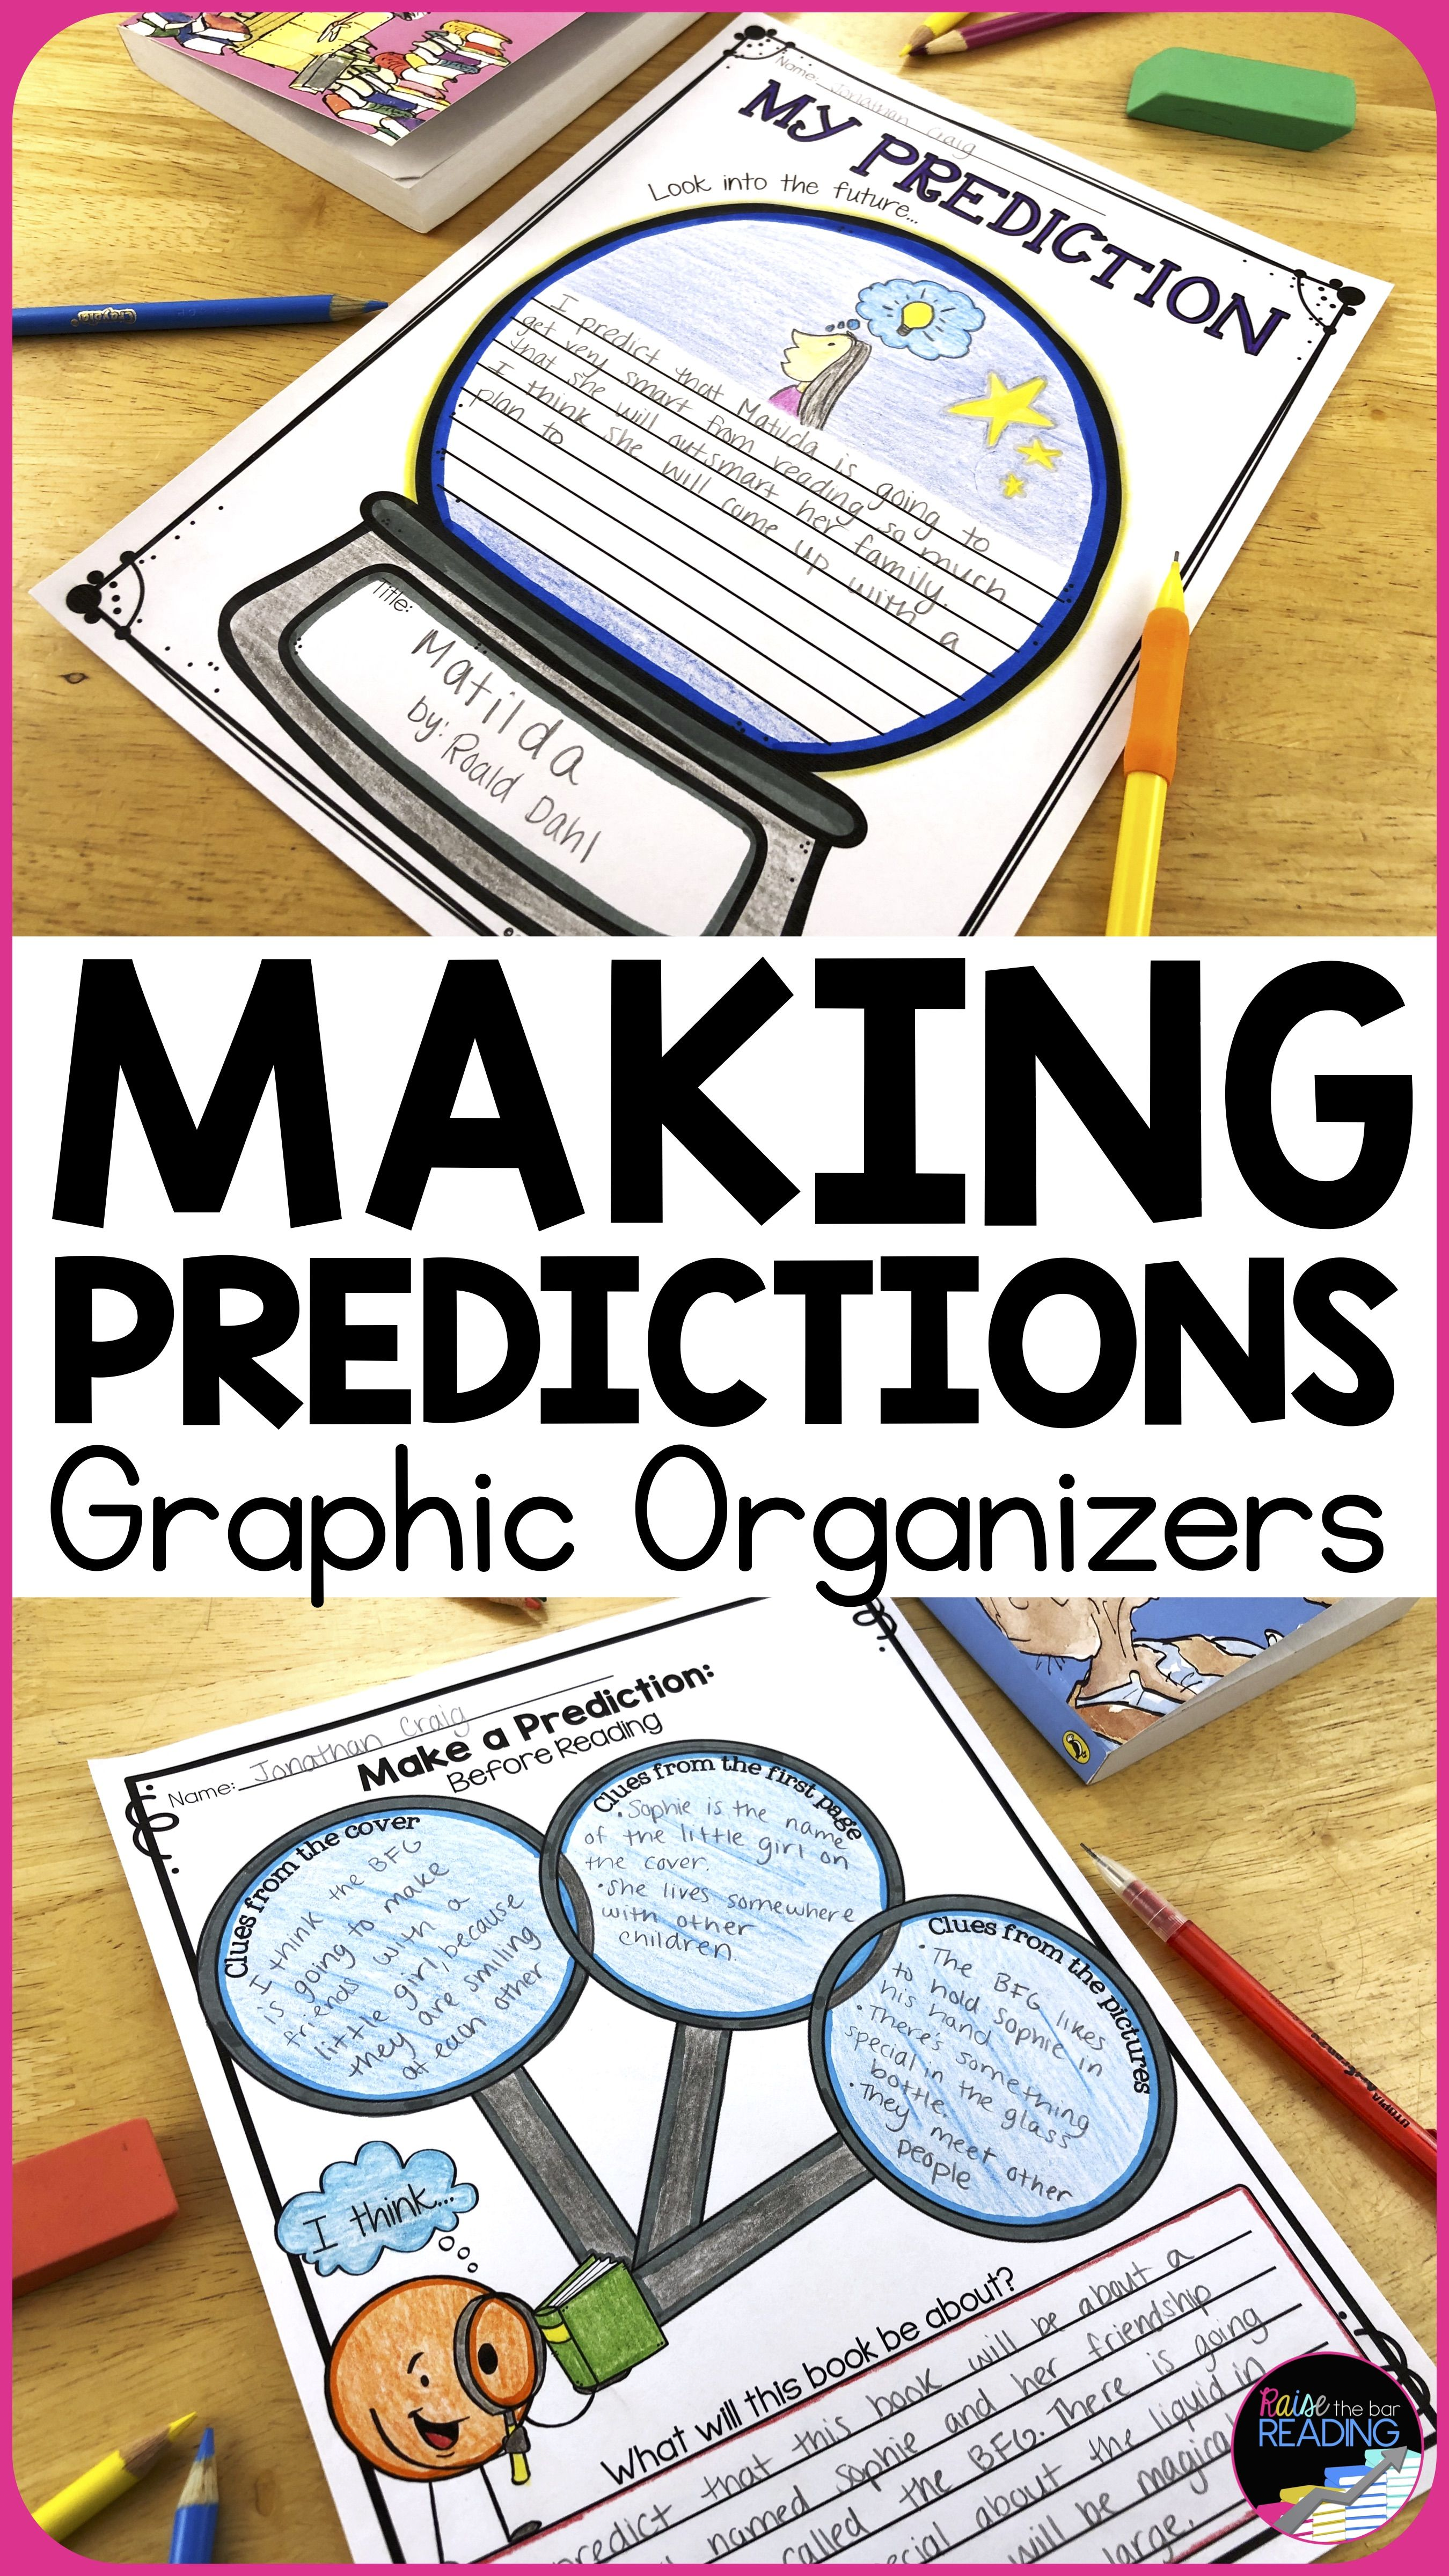 Making Predictions Graphic Organizer Poster Amp Making